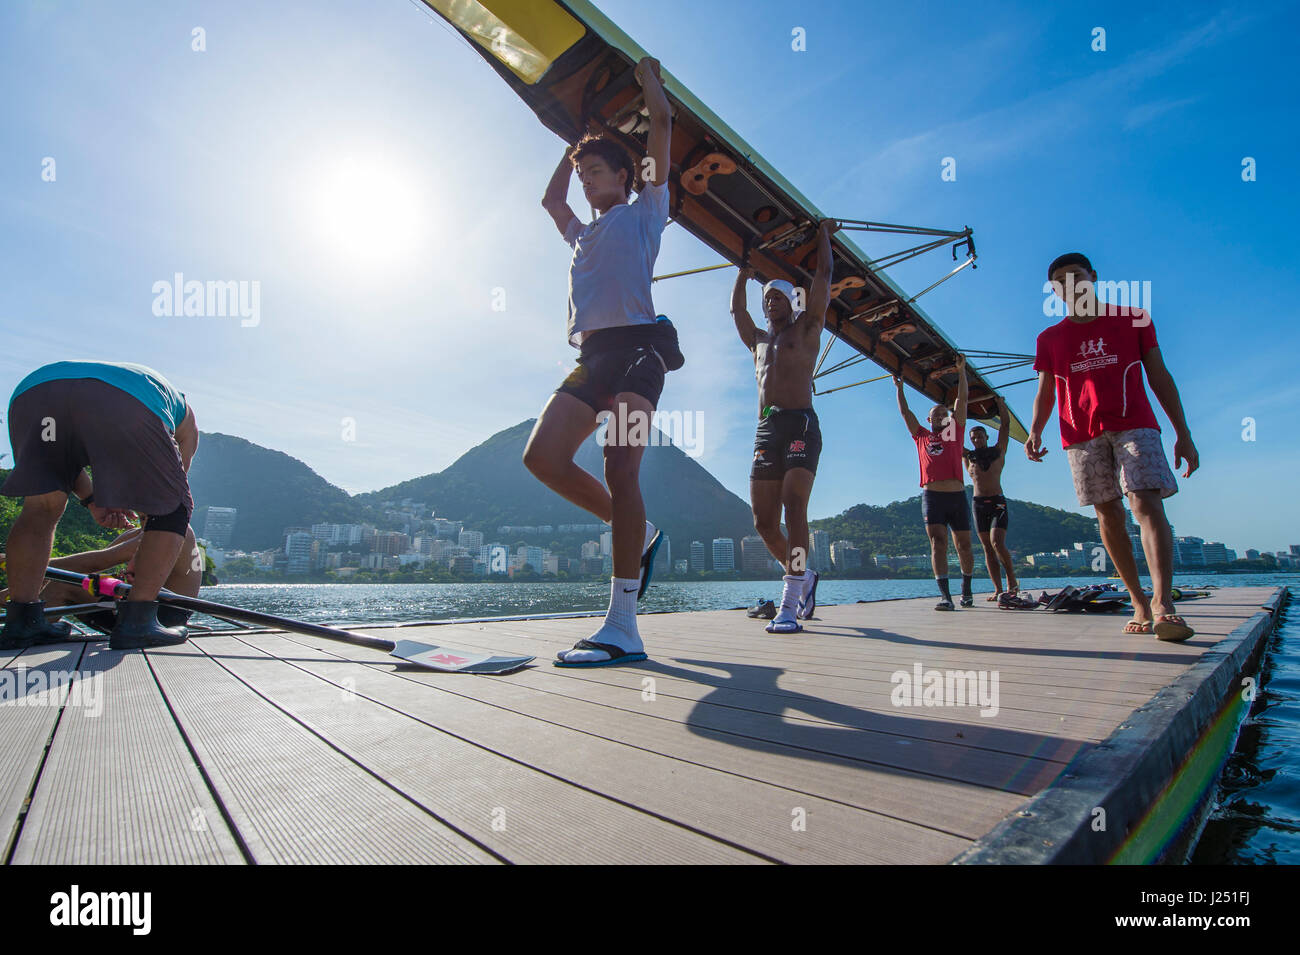 RIO DE JANEIRO - JANUARY 30, 2016: Group of Brazilian rowers carry their boat from the dock after a morning practice - Stock Image